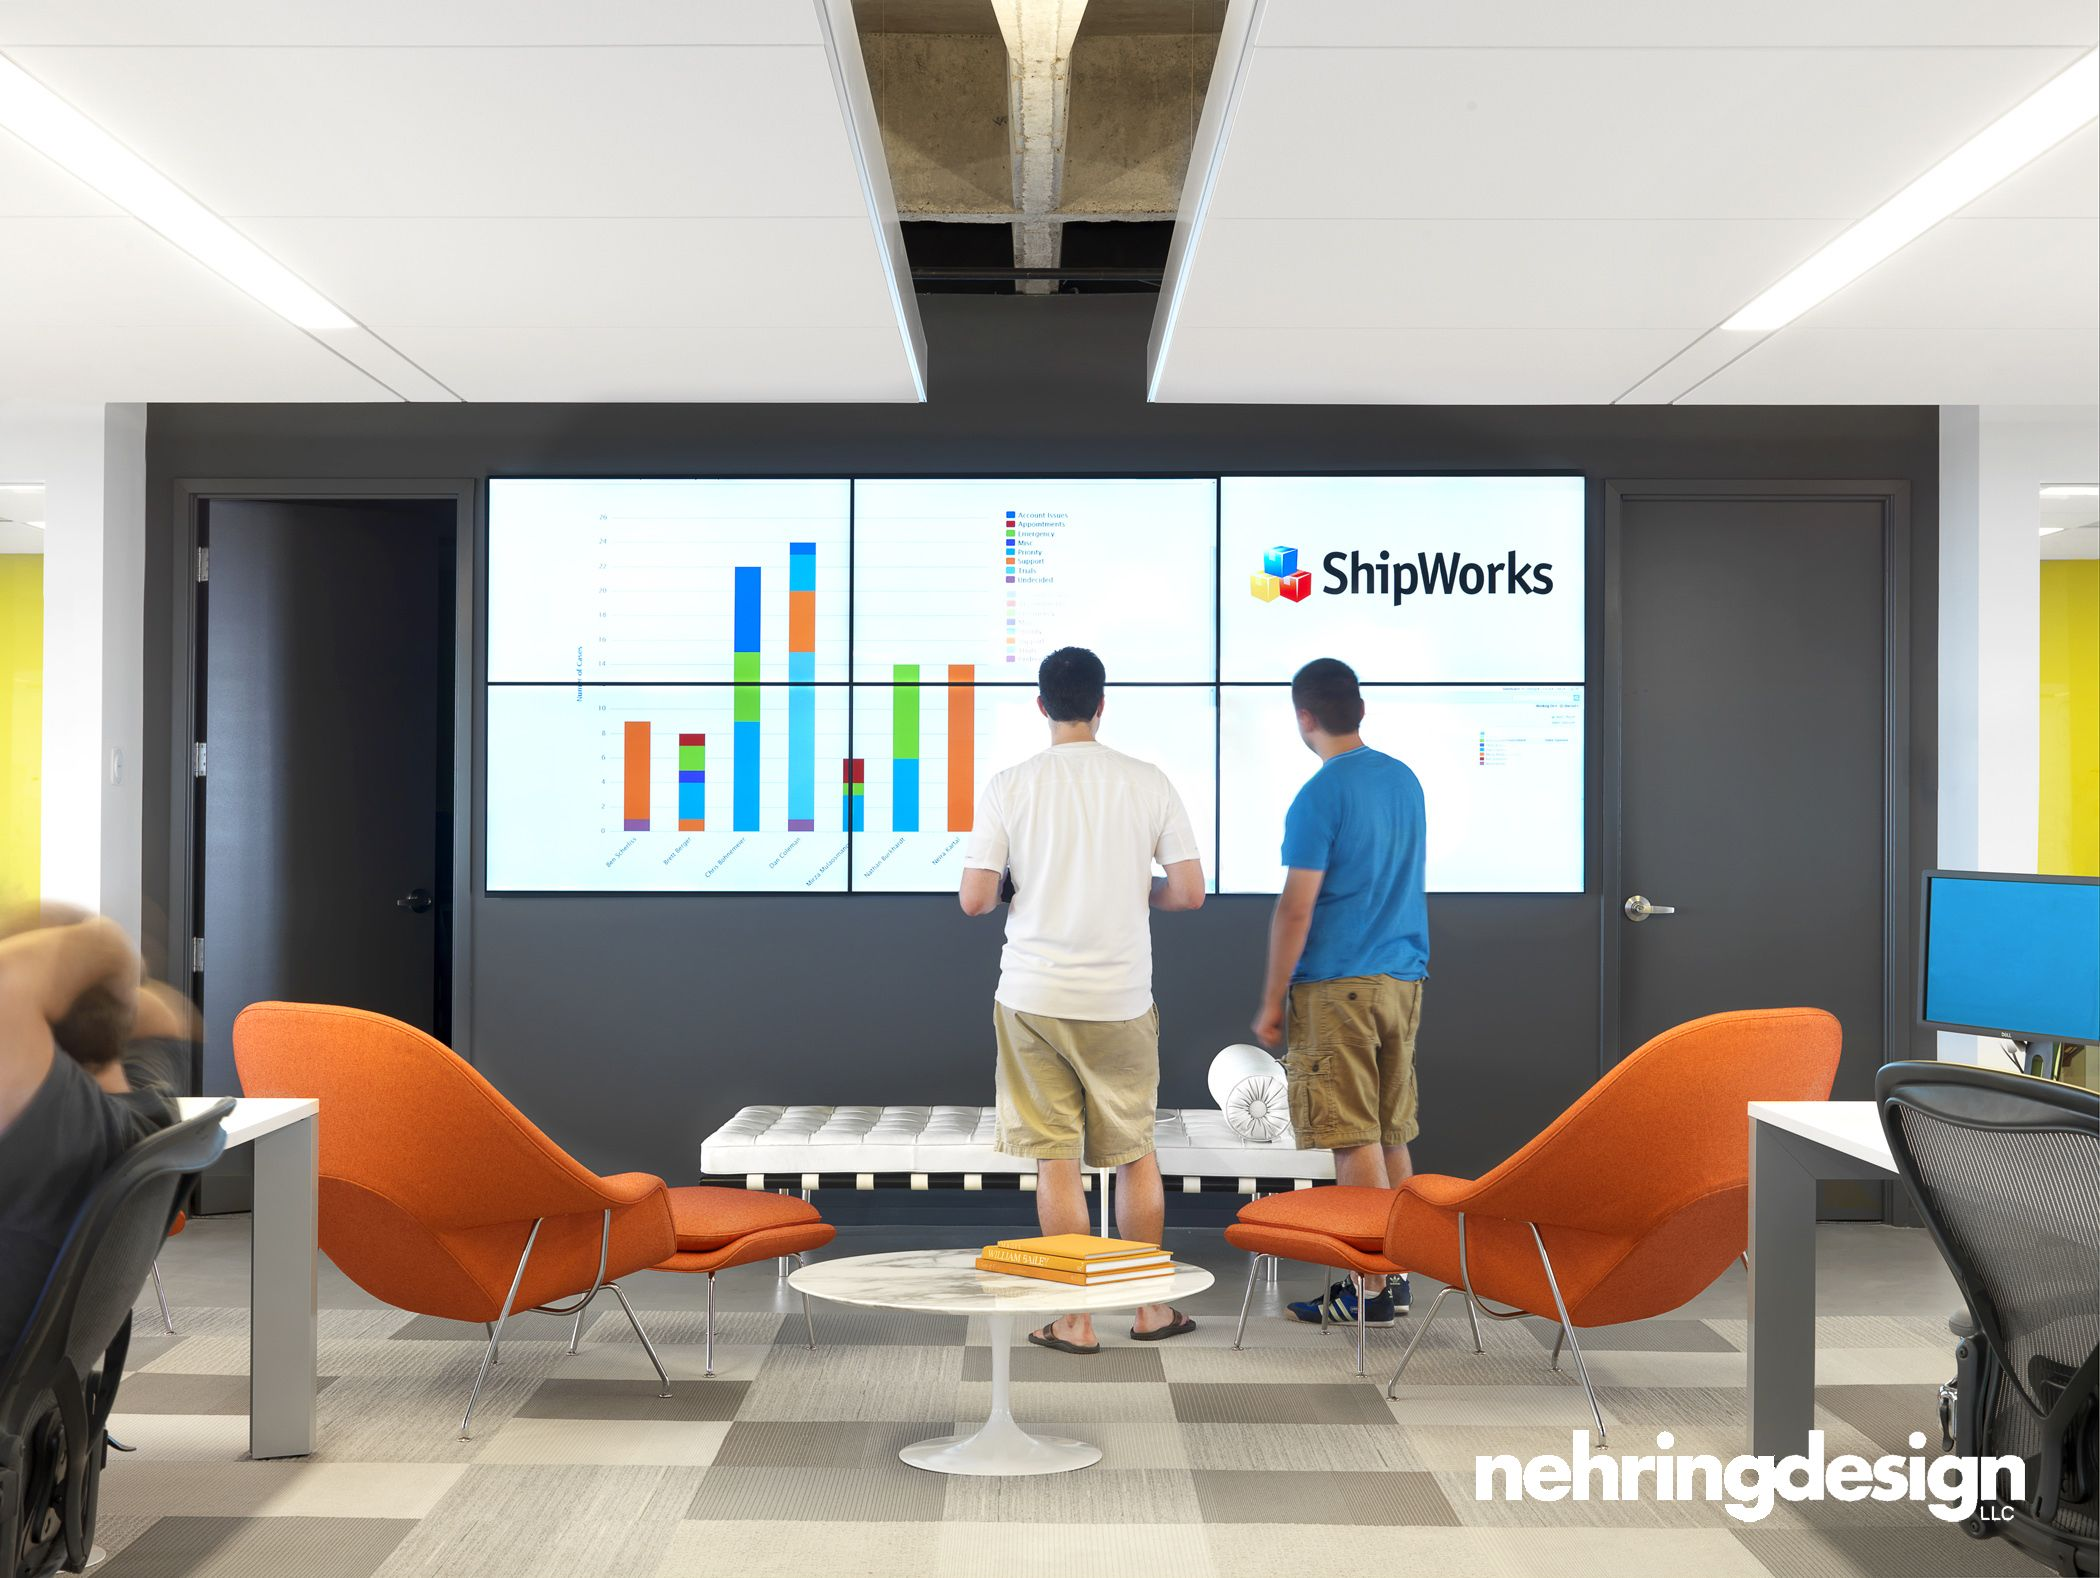 Interesting video wall in an open space For quick impromptu